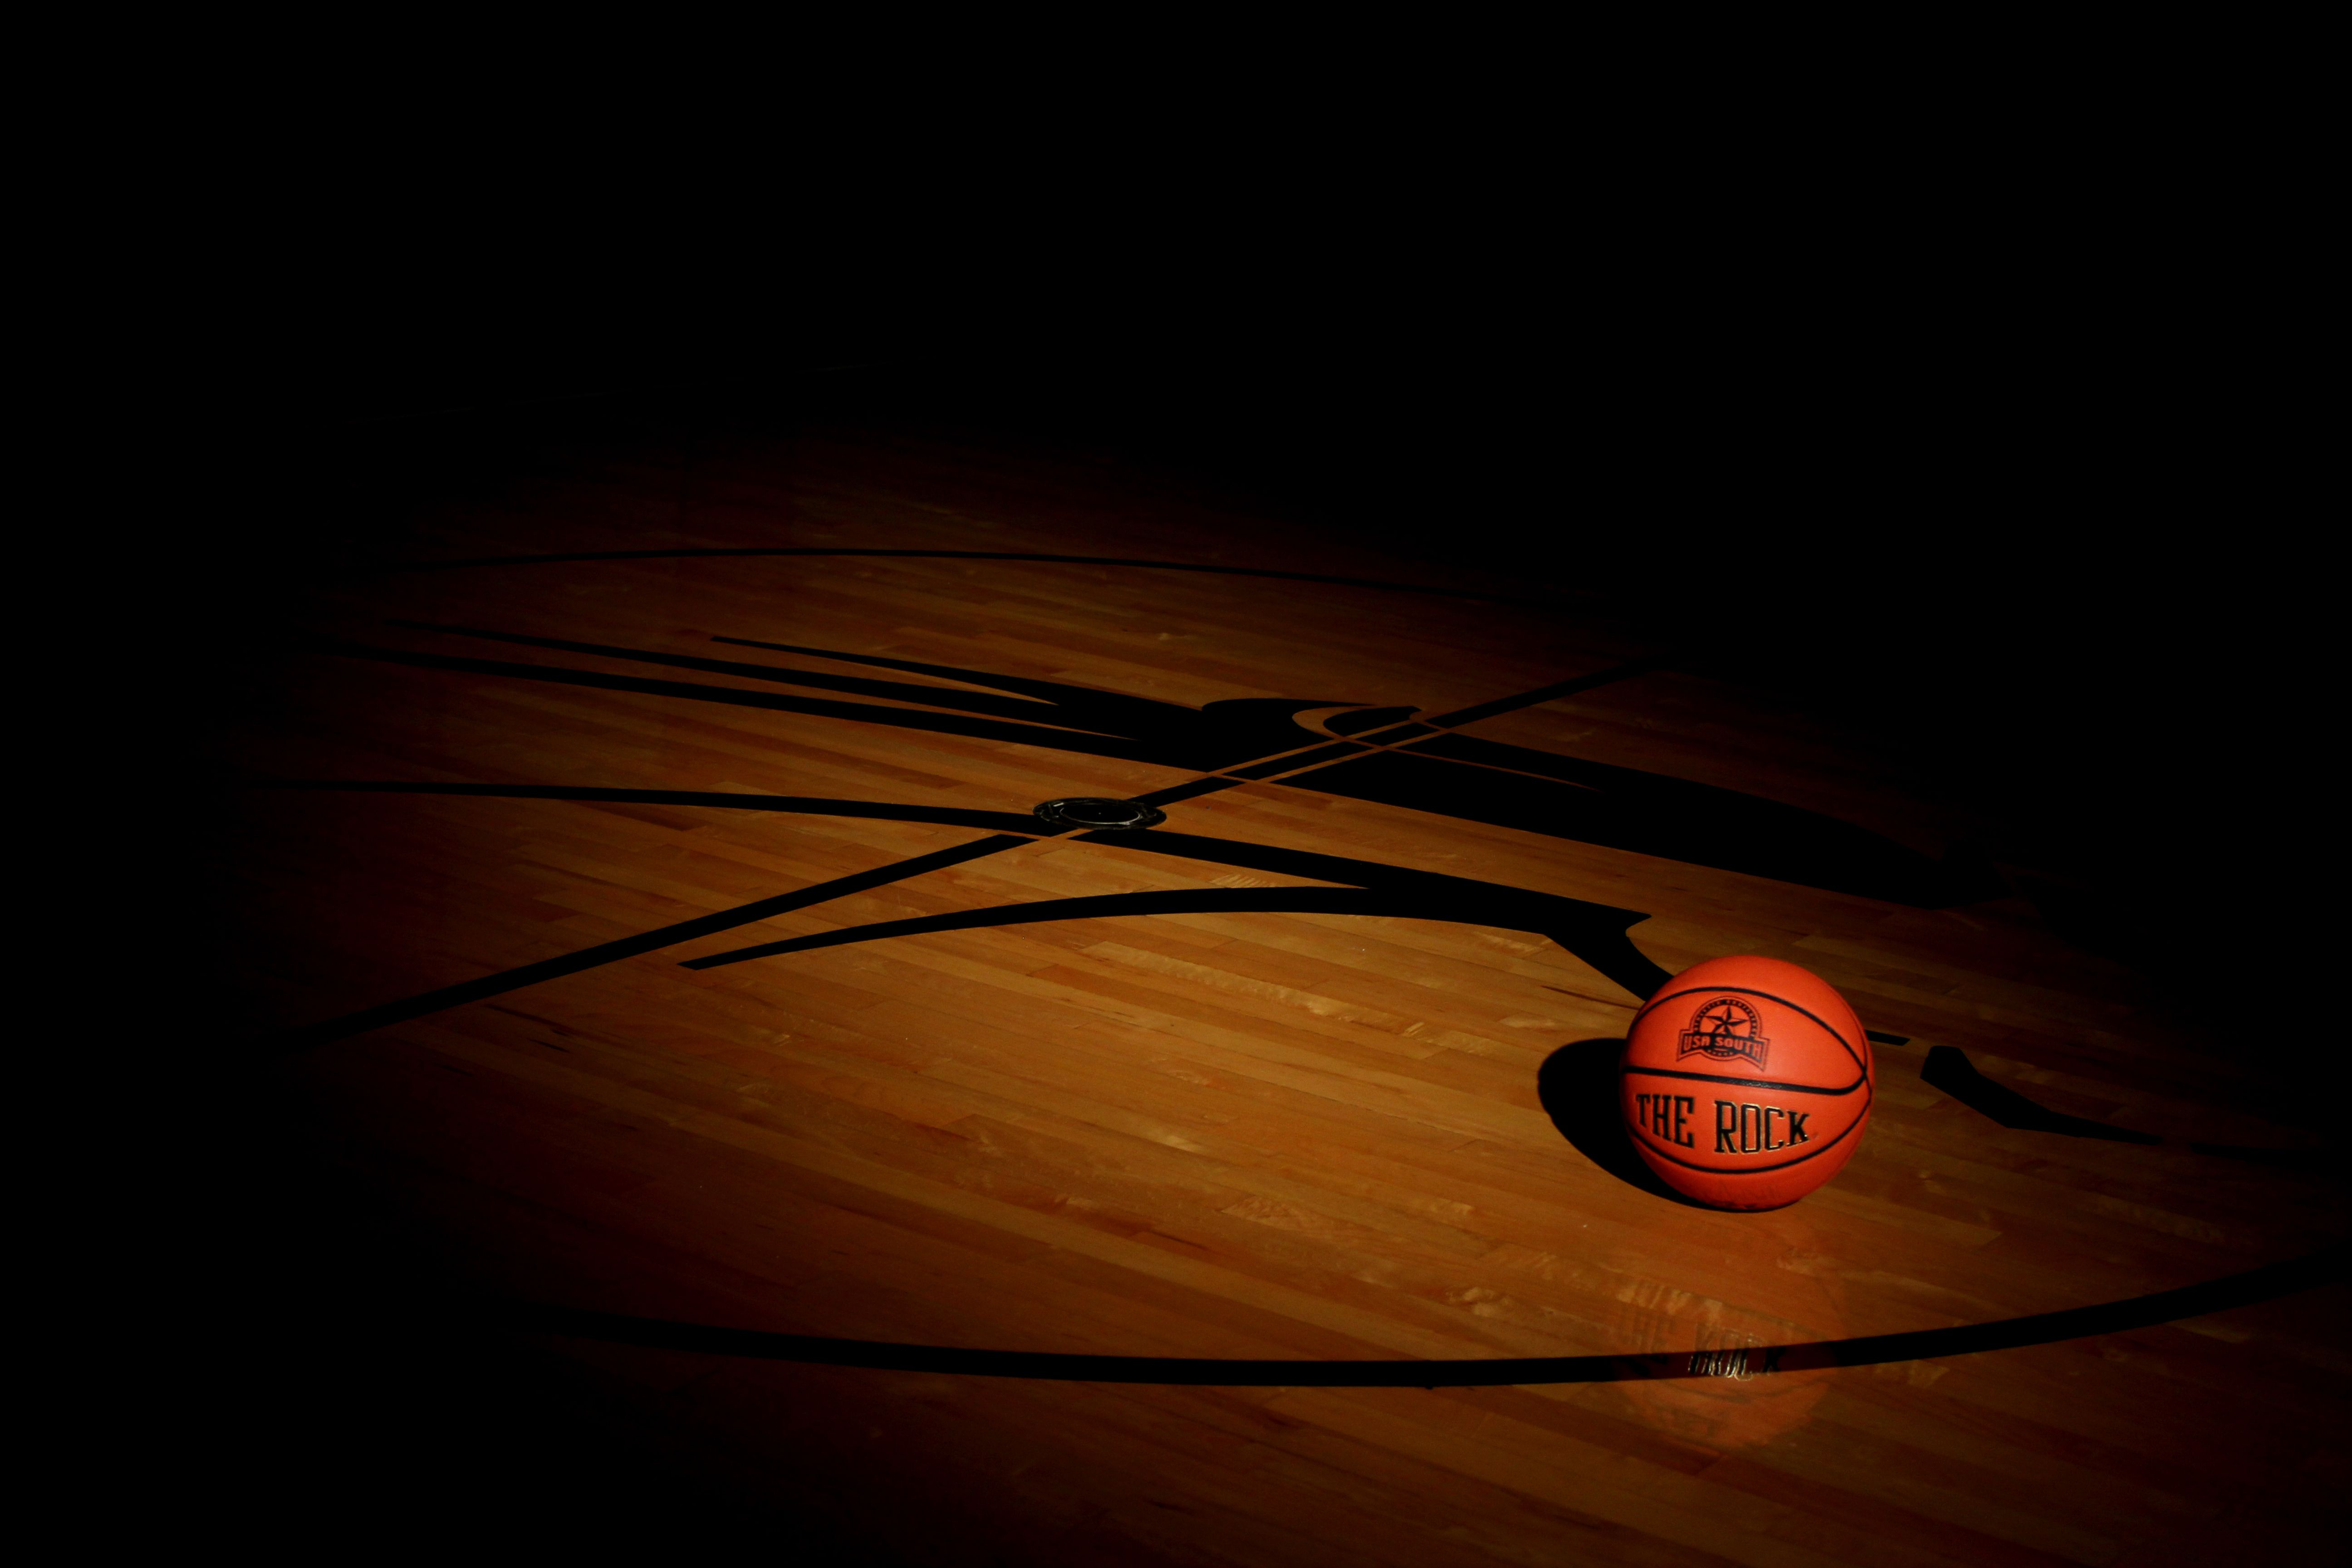 Hd Basketball Court Wallpapers Mobile With Hd Wallpaper